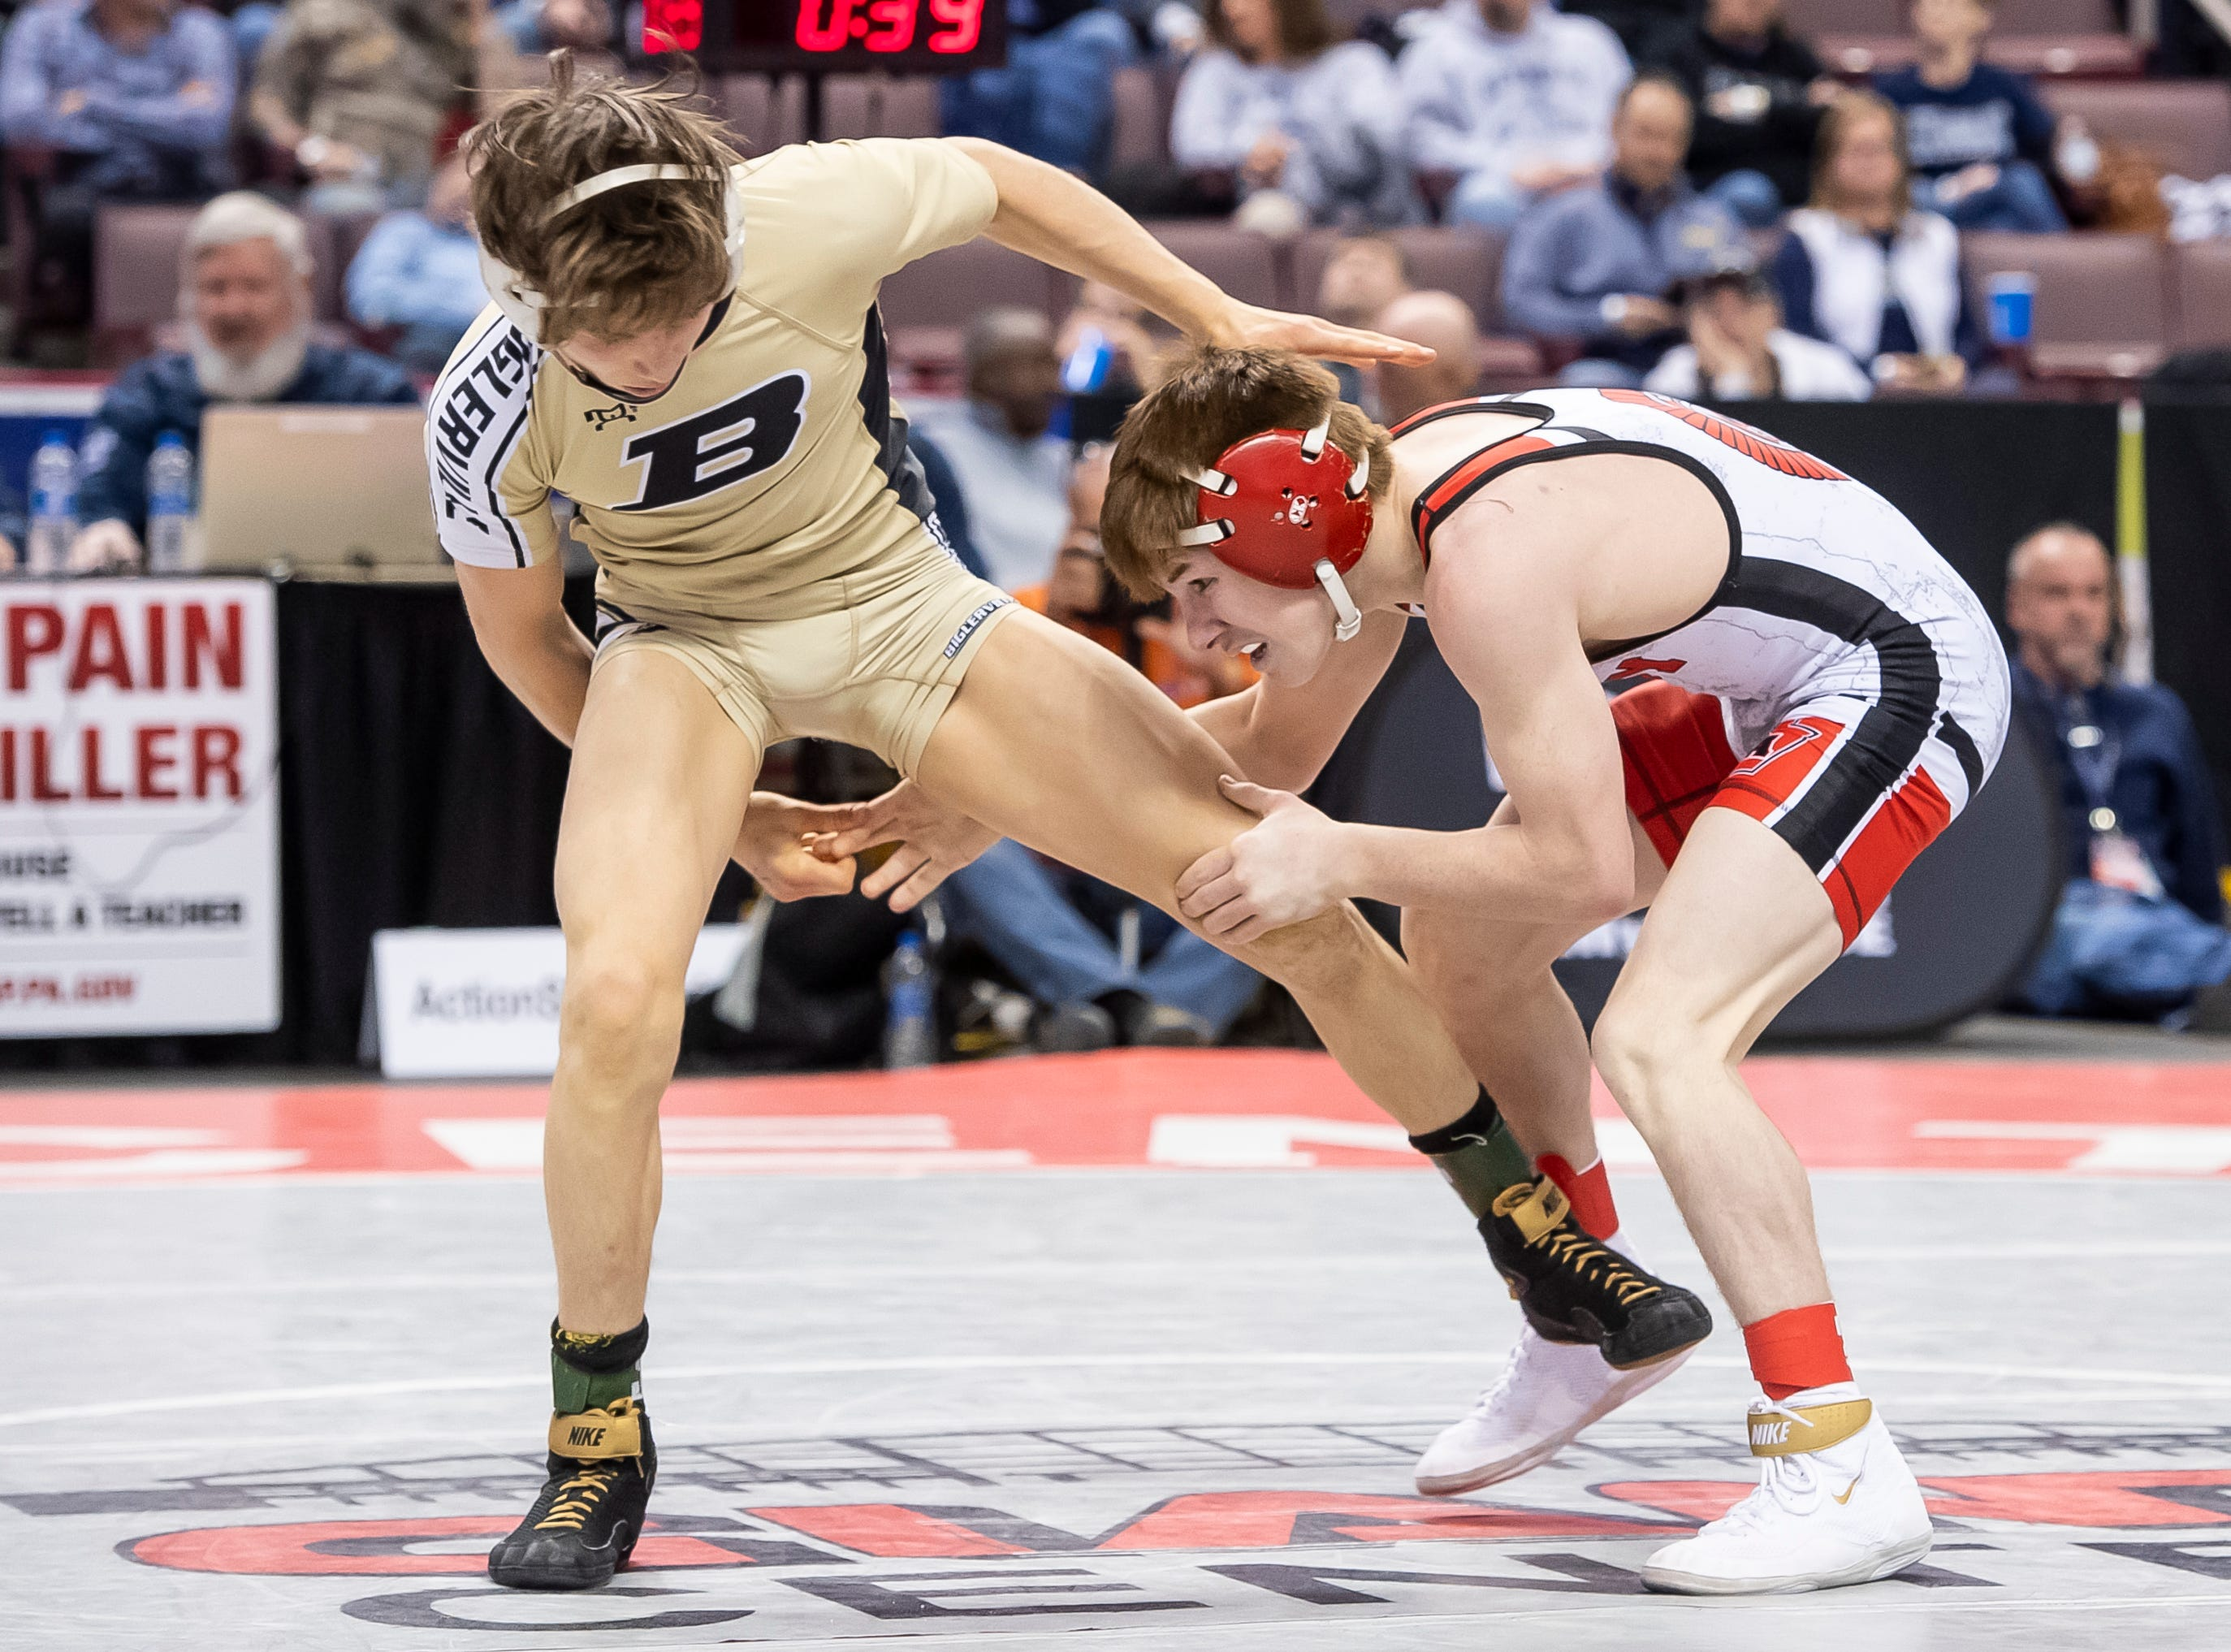 Biglerville's Levi Haines, left, wrestles Troy Area's Sheldon Seymour during the PIAA 2A 106-pound championship bout at the Giant Center in Hershey Saturday, March 9, 2019. Seymour won 5-4.